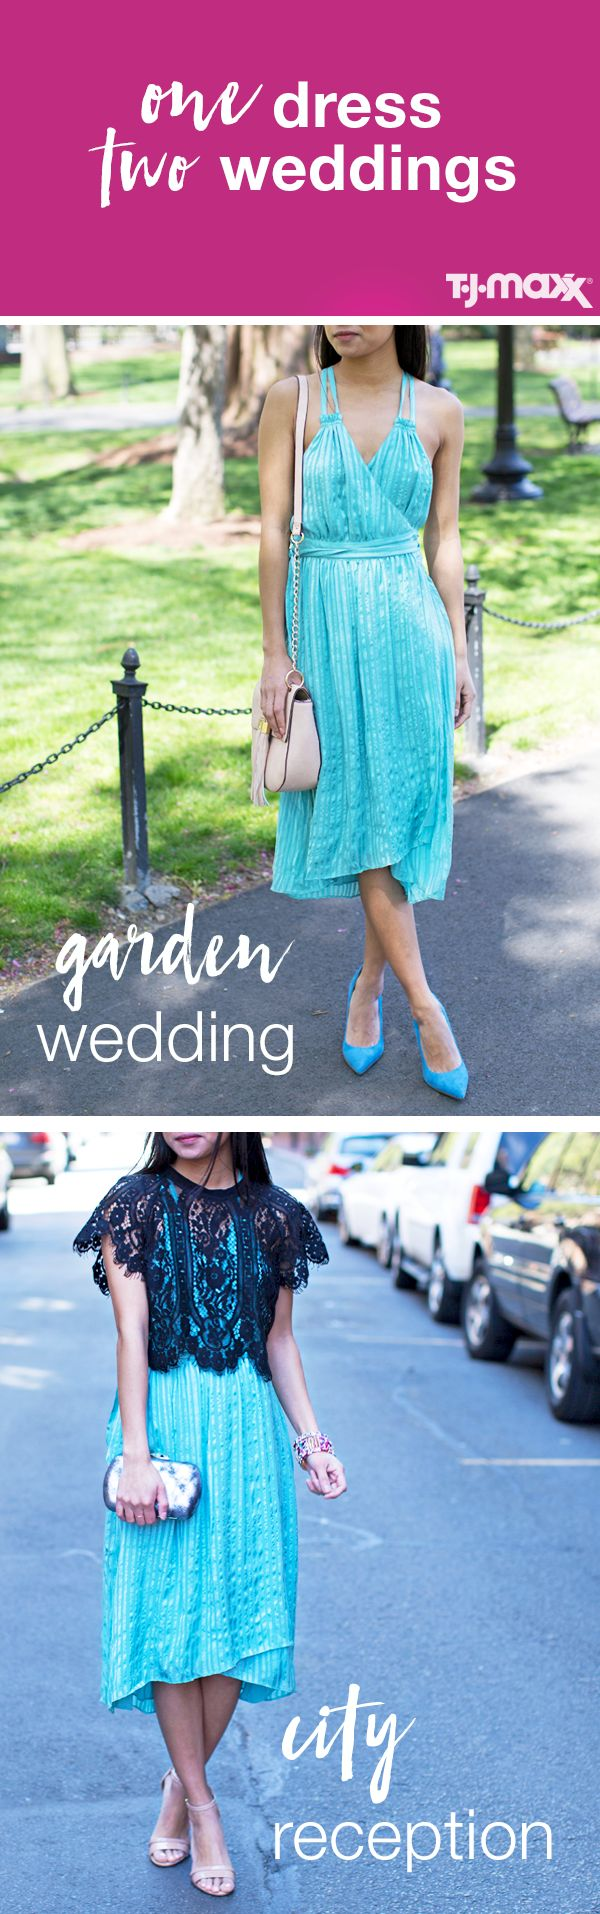 40 best What to Wear: Special Occasions images on Pinterest | Bridal ...